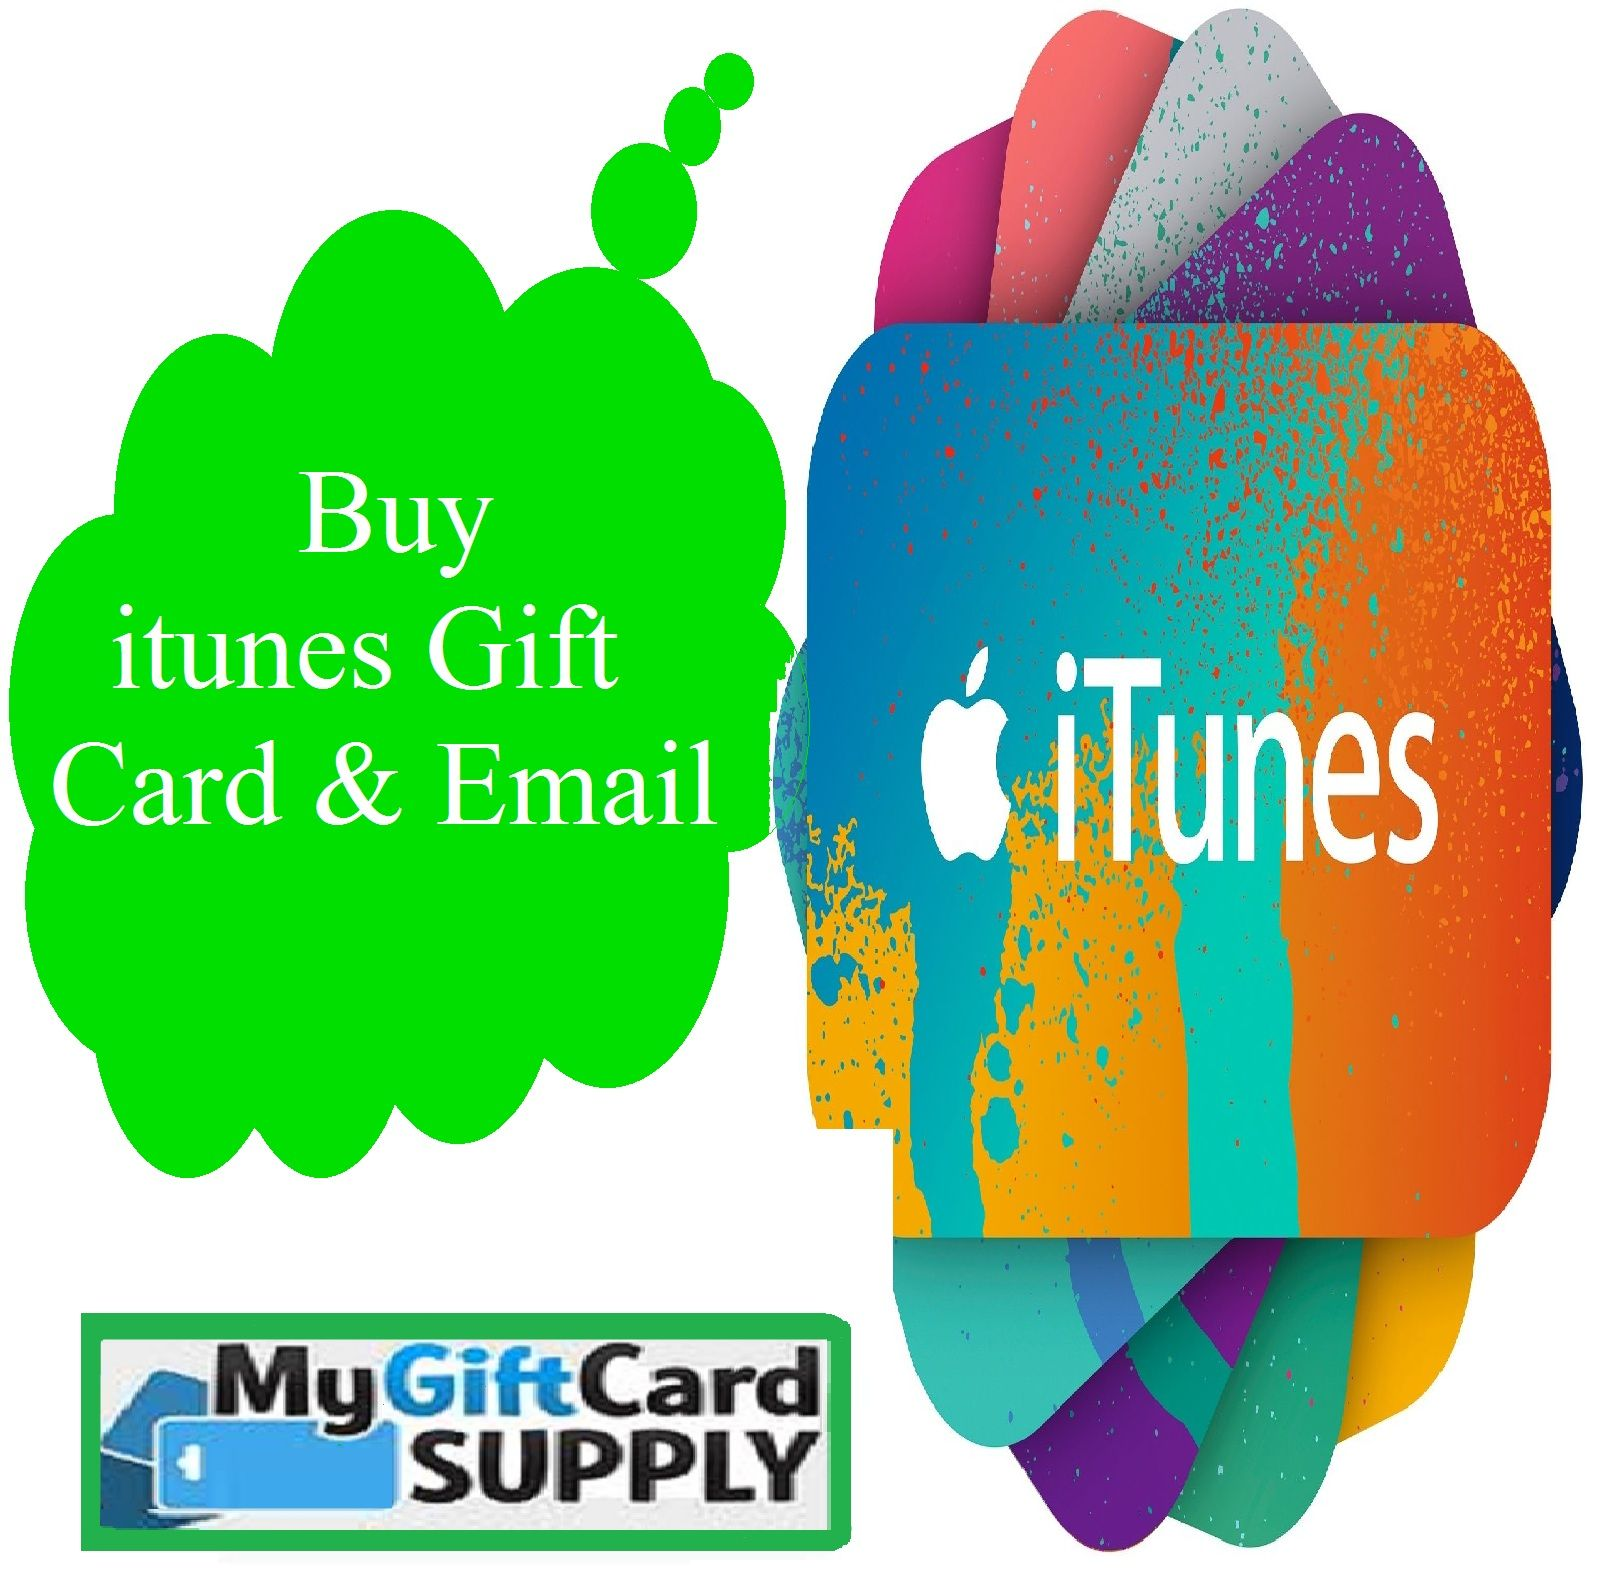 Buy Itunes Us Gift Card Singapore With Your Paypal Go To Www Mygiftcardsupply Com It S 100 Secured Itunes Gift Cards Best Gift Cards Paypal Gift Card